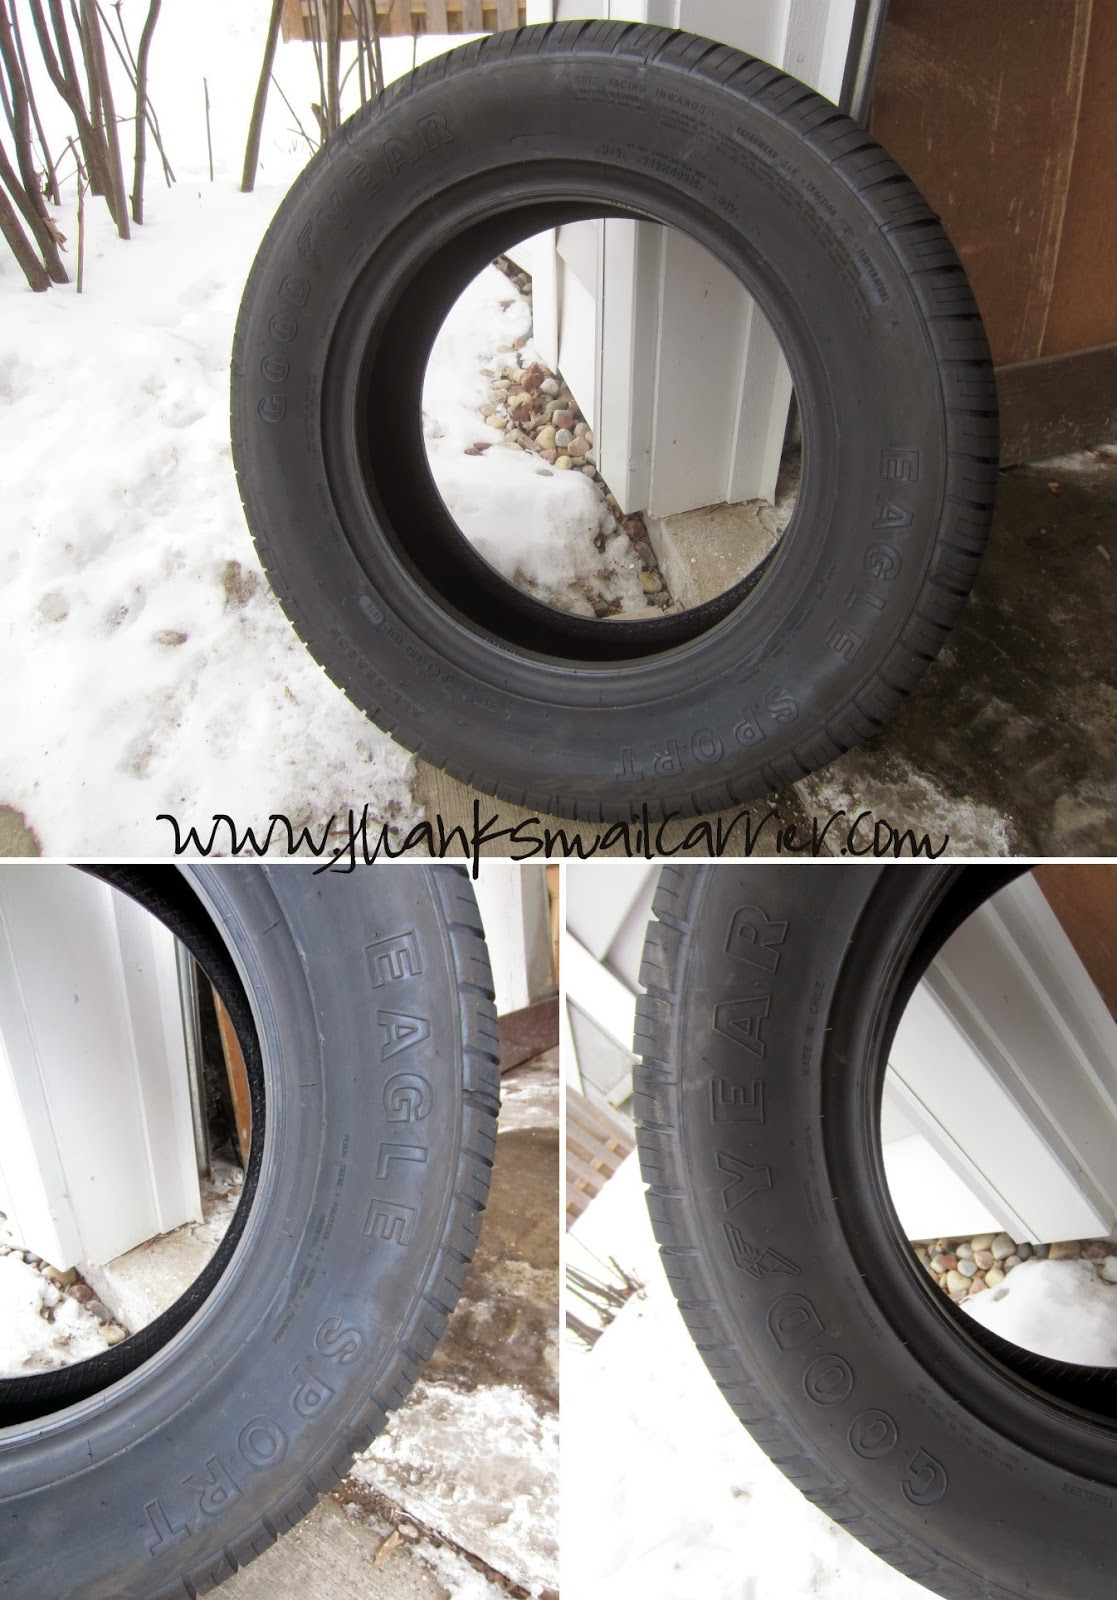 Goodyear tire review